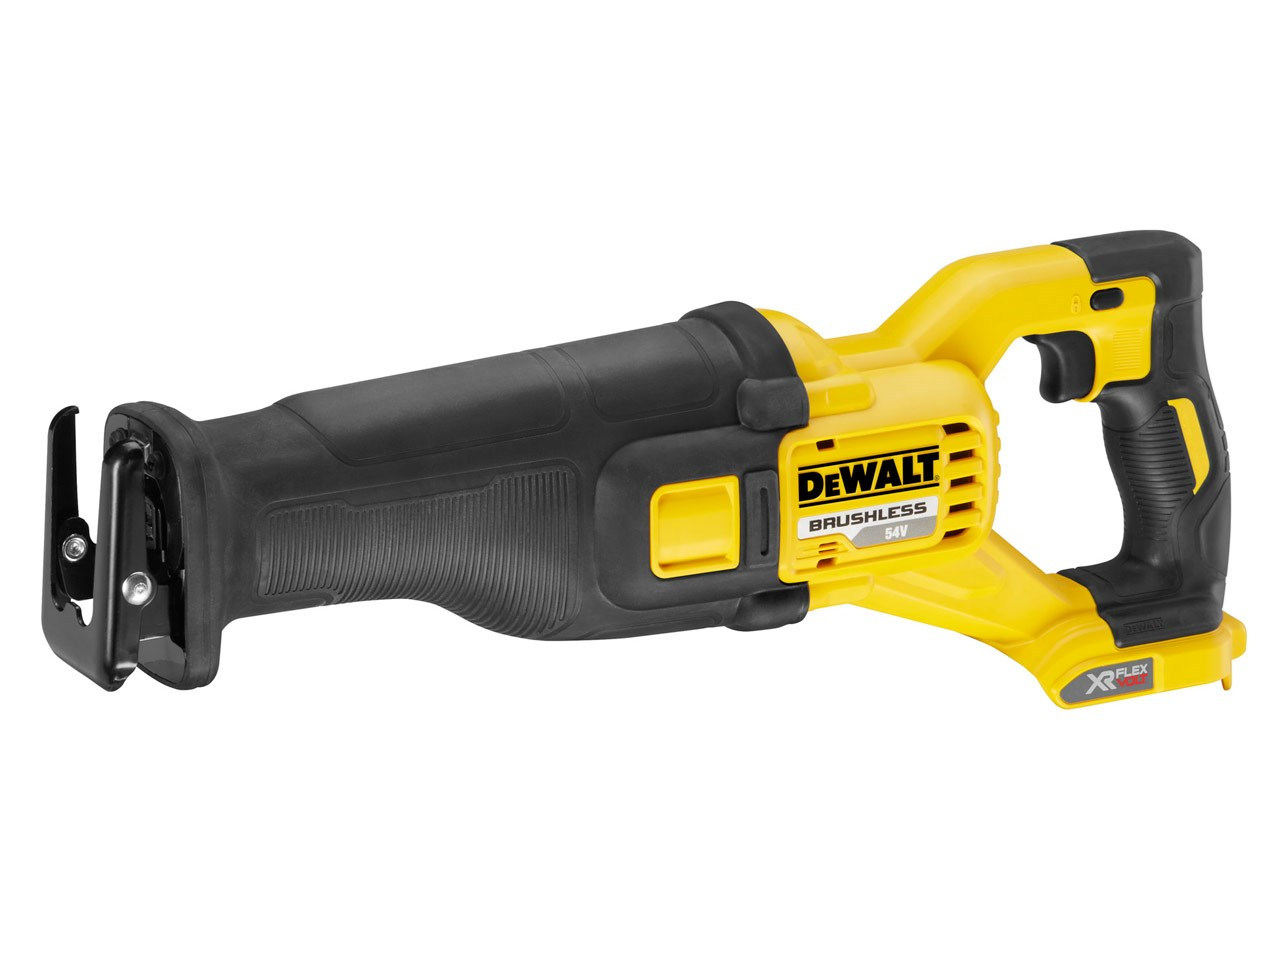 Dewalt dcs388n xj 54v xr flexvolt reciprocating saw bare unit greentooth Gallery